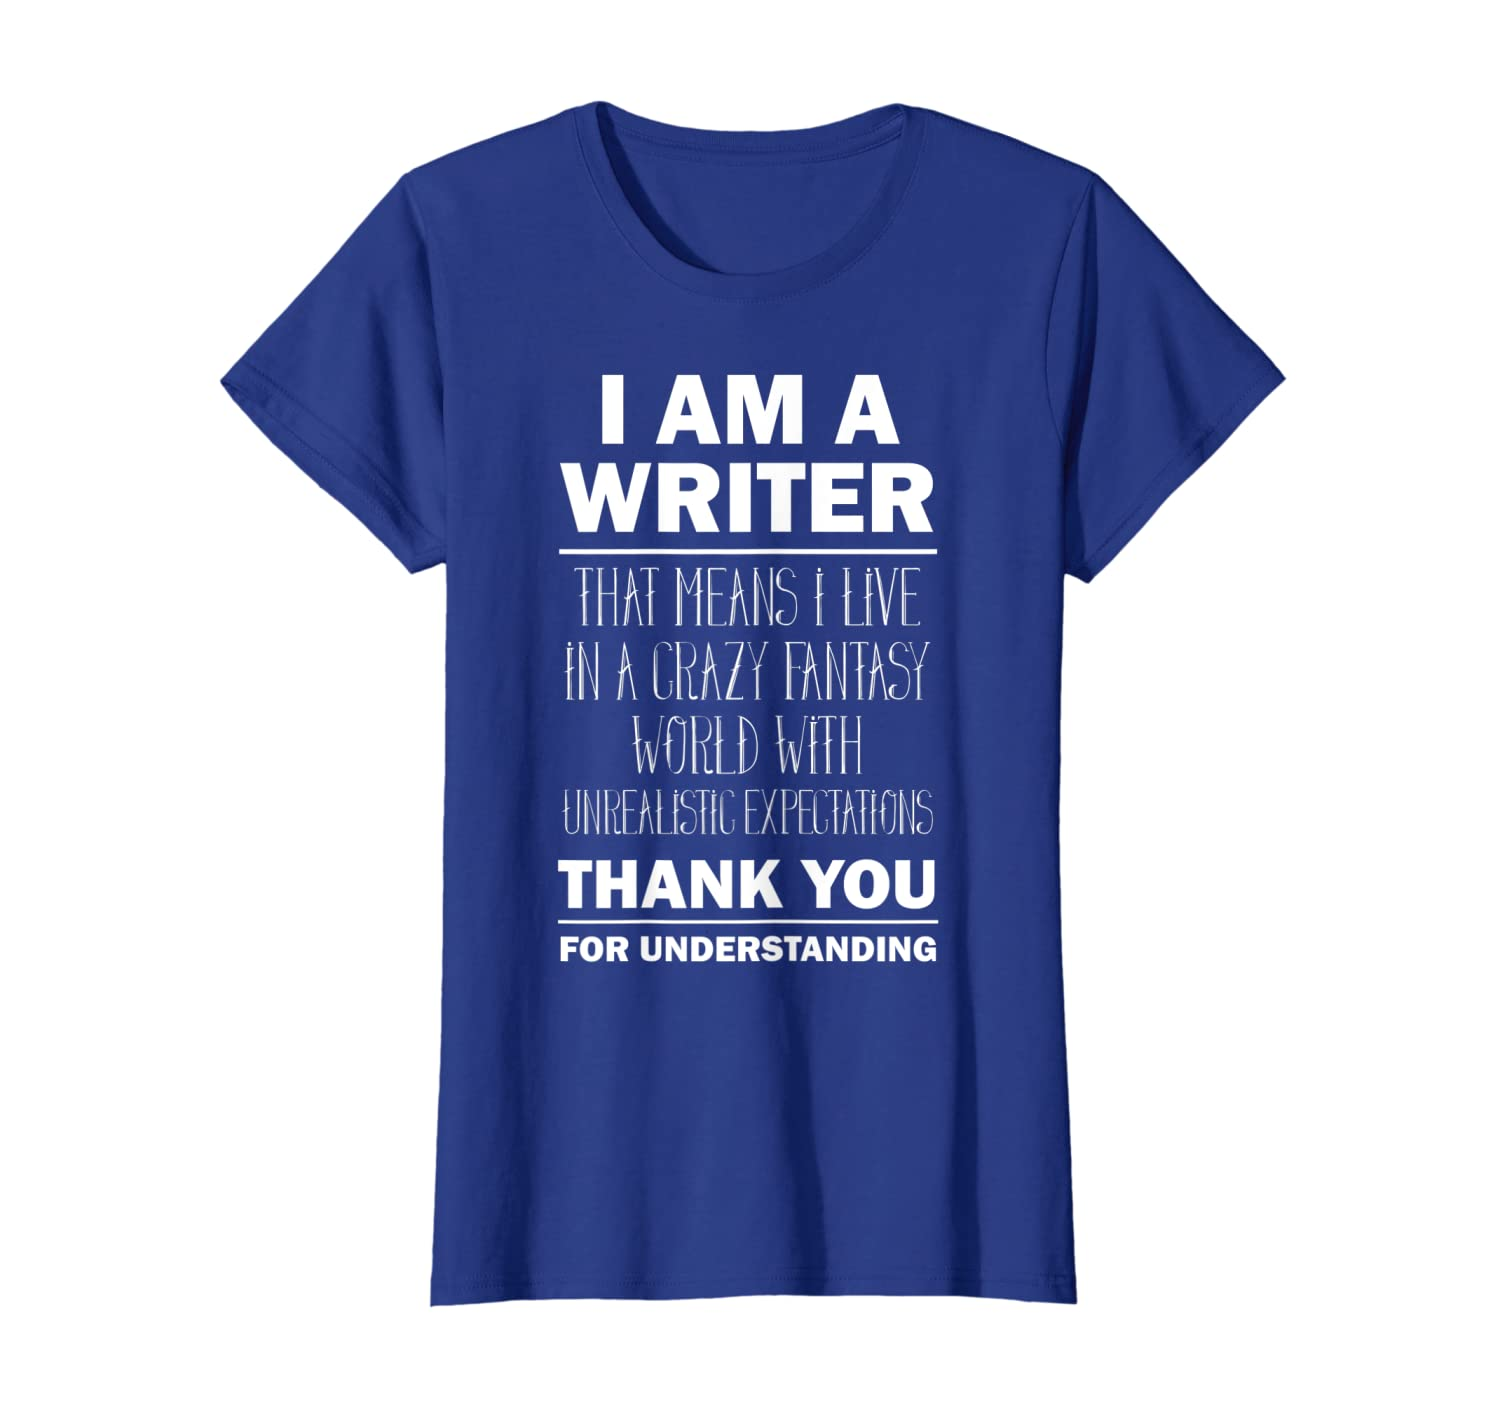 cf137c4e Amazon.com: I Am a Writer - Funny Author T-Shirt Gift Tee: Clothing